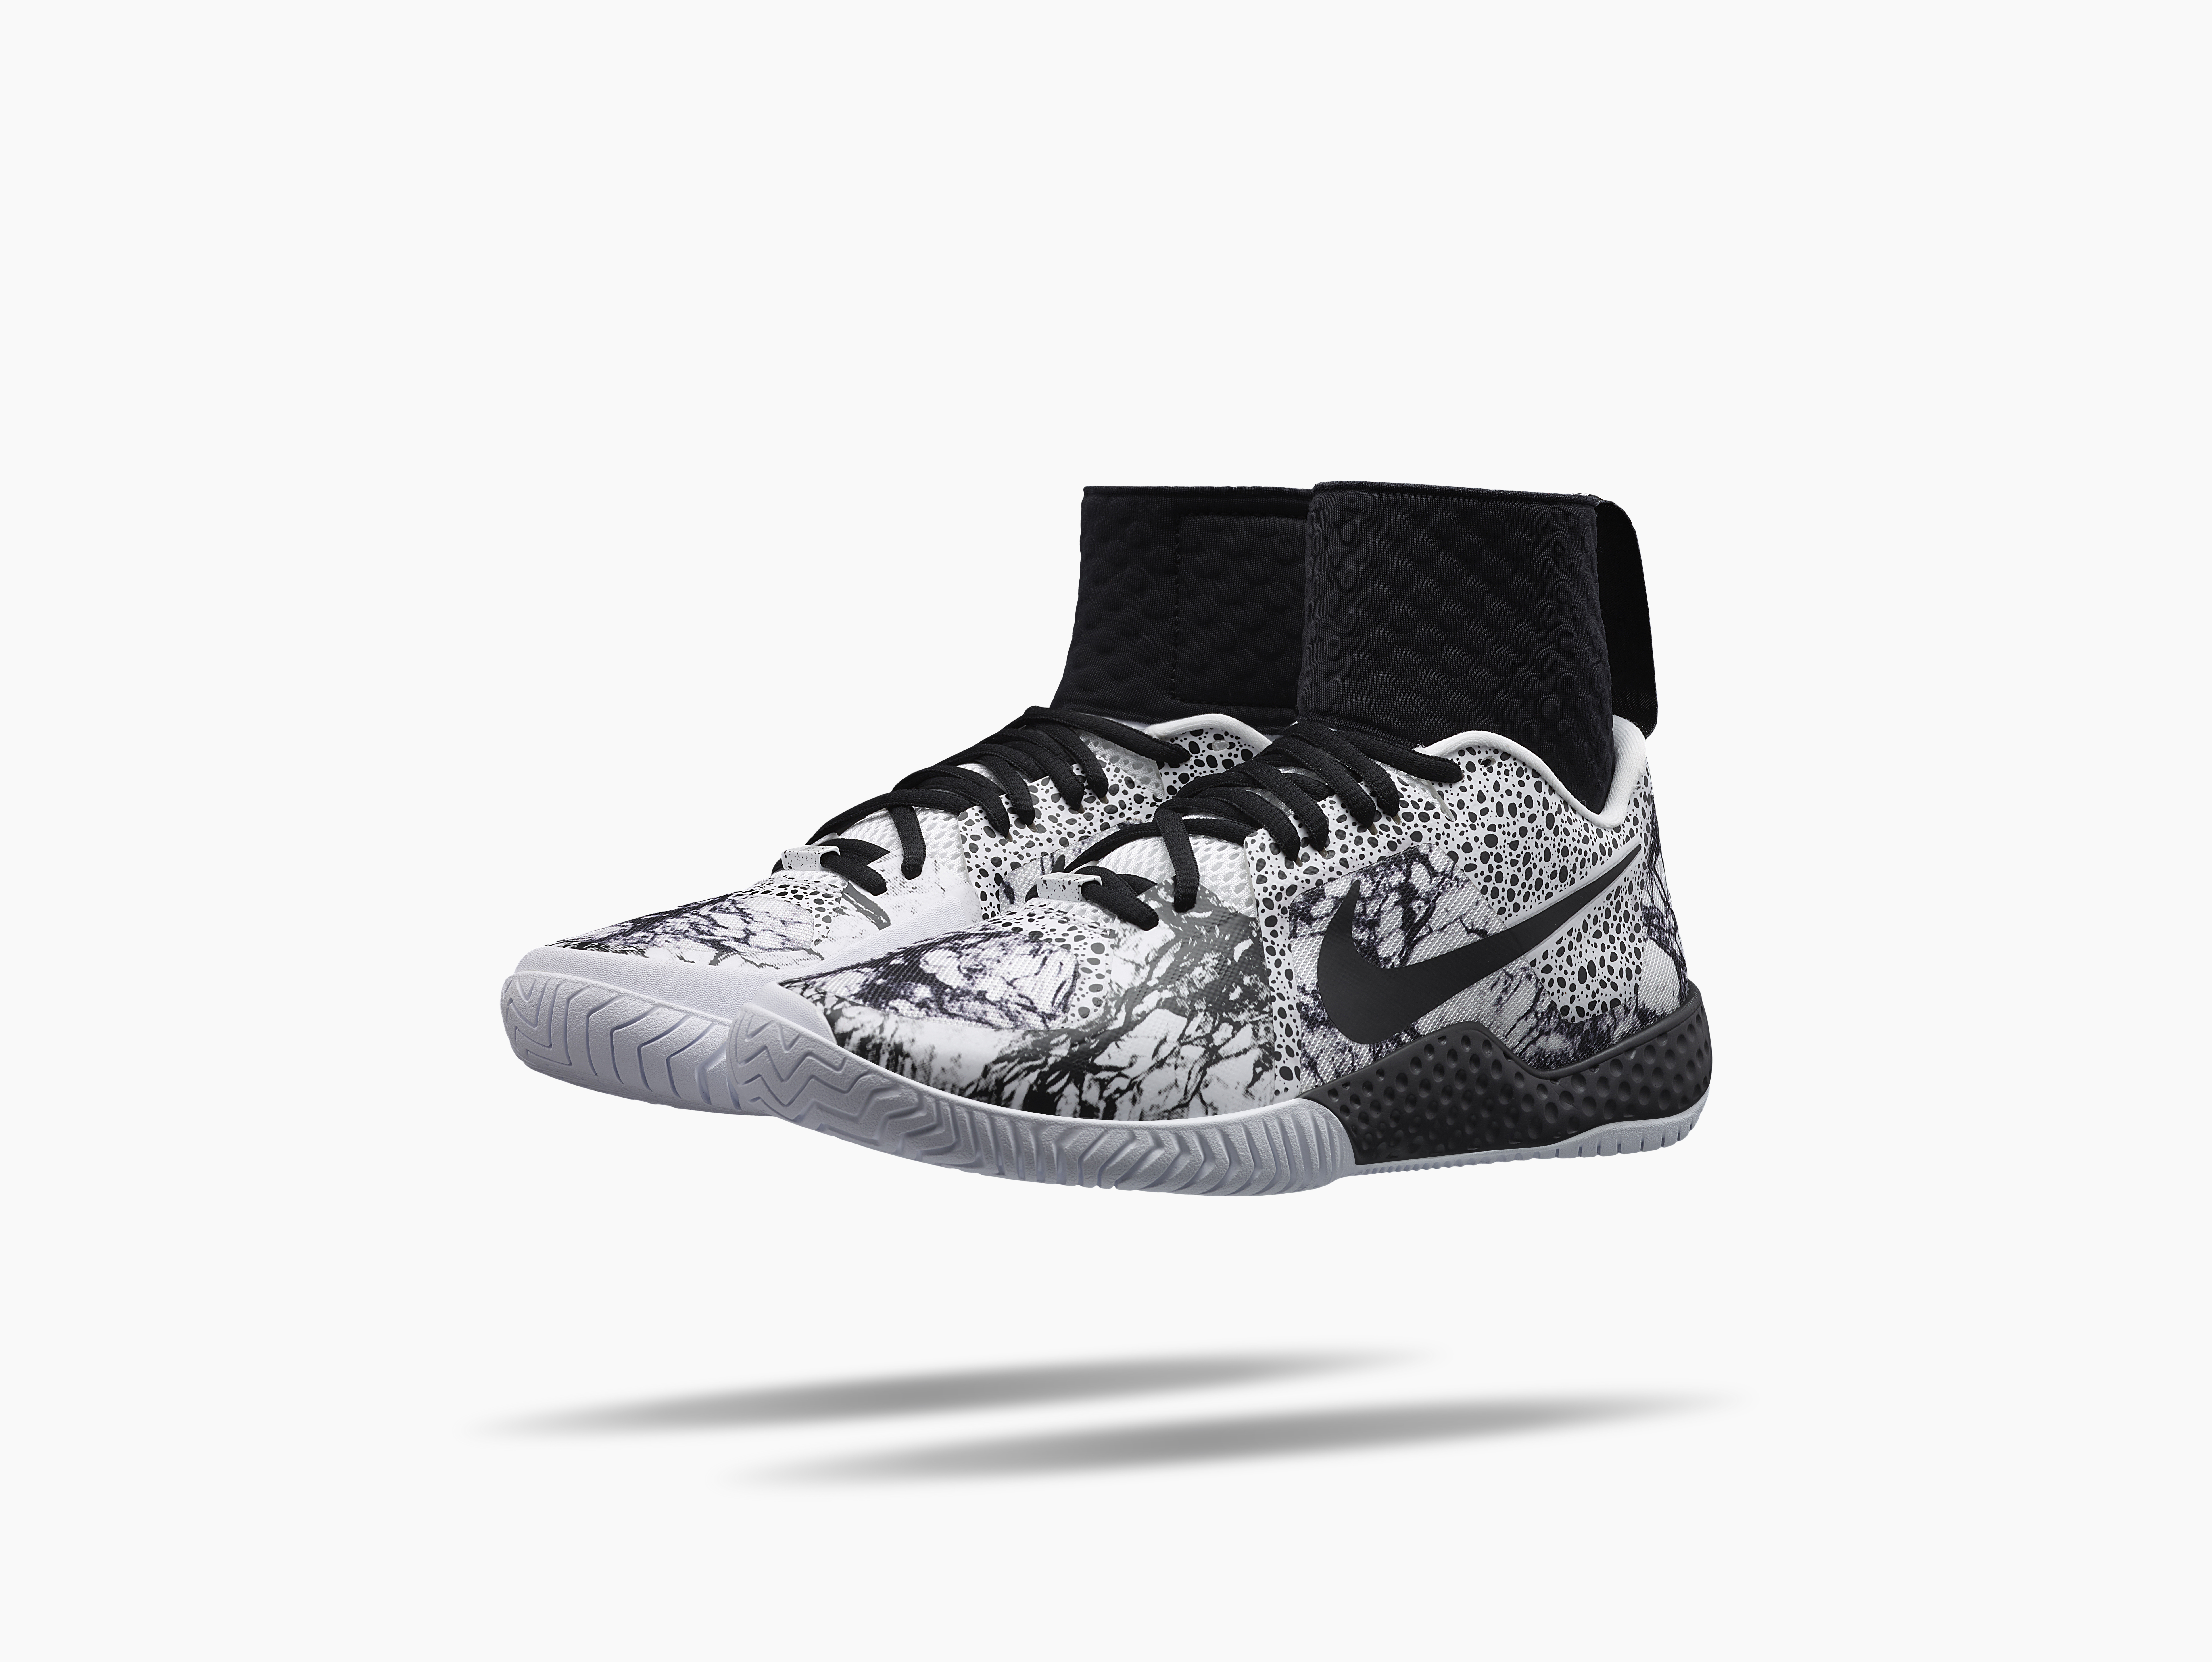 best service 15f74 cb665 NikeCourt Flare 3 45202. Williams will don the limited edition NikeCourt ...